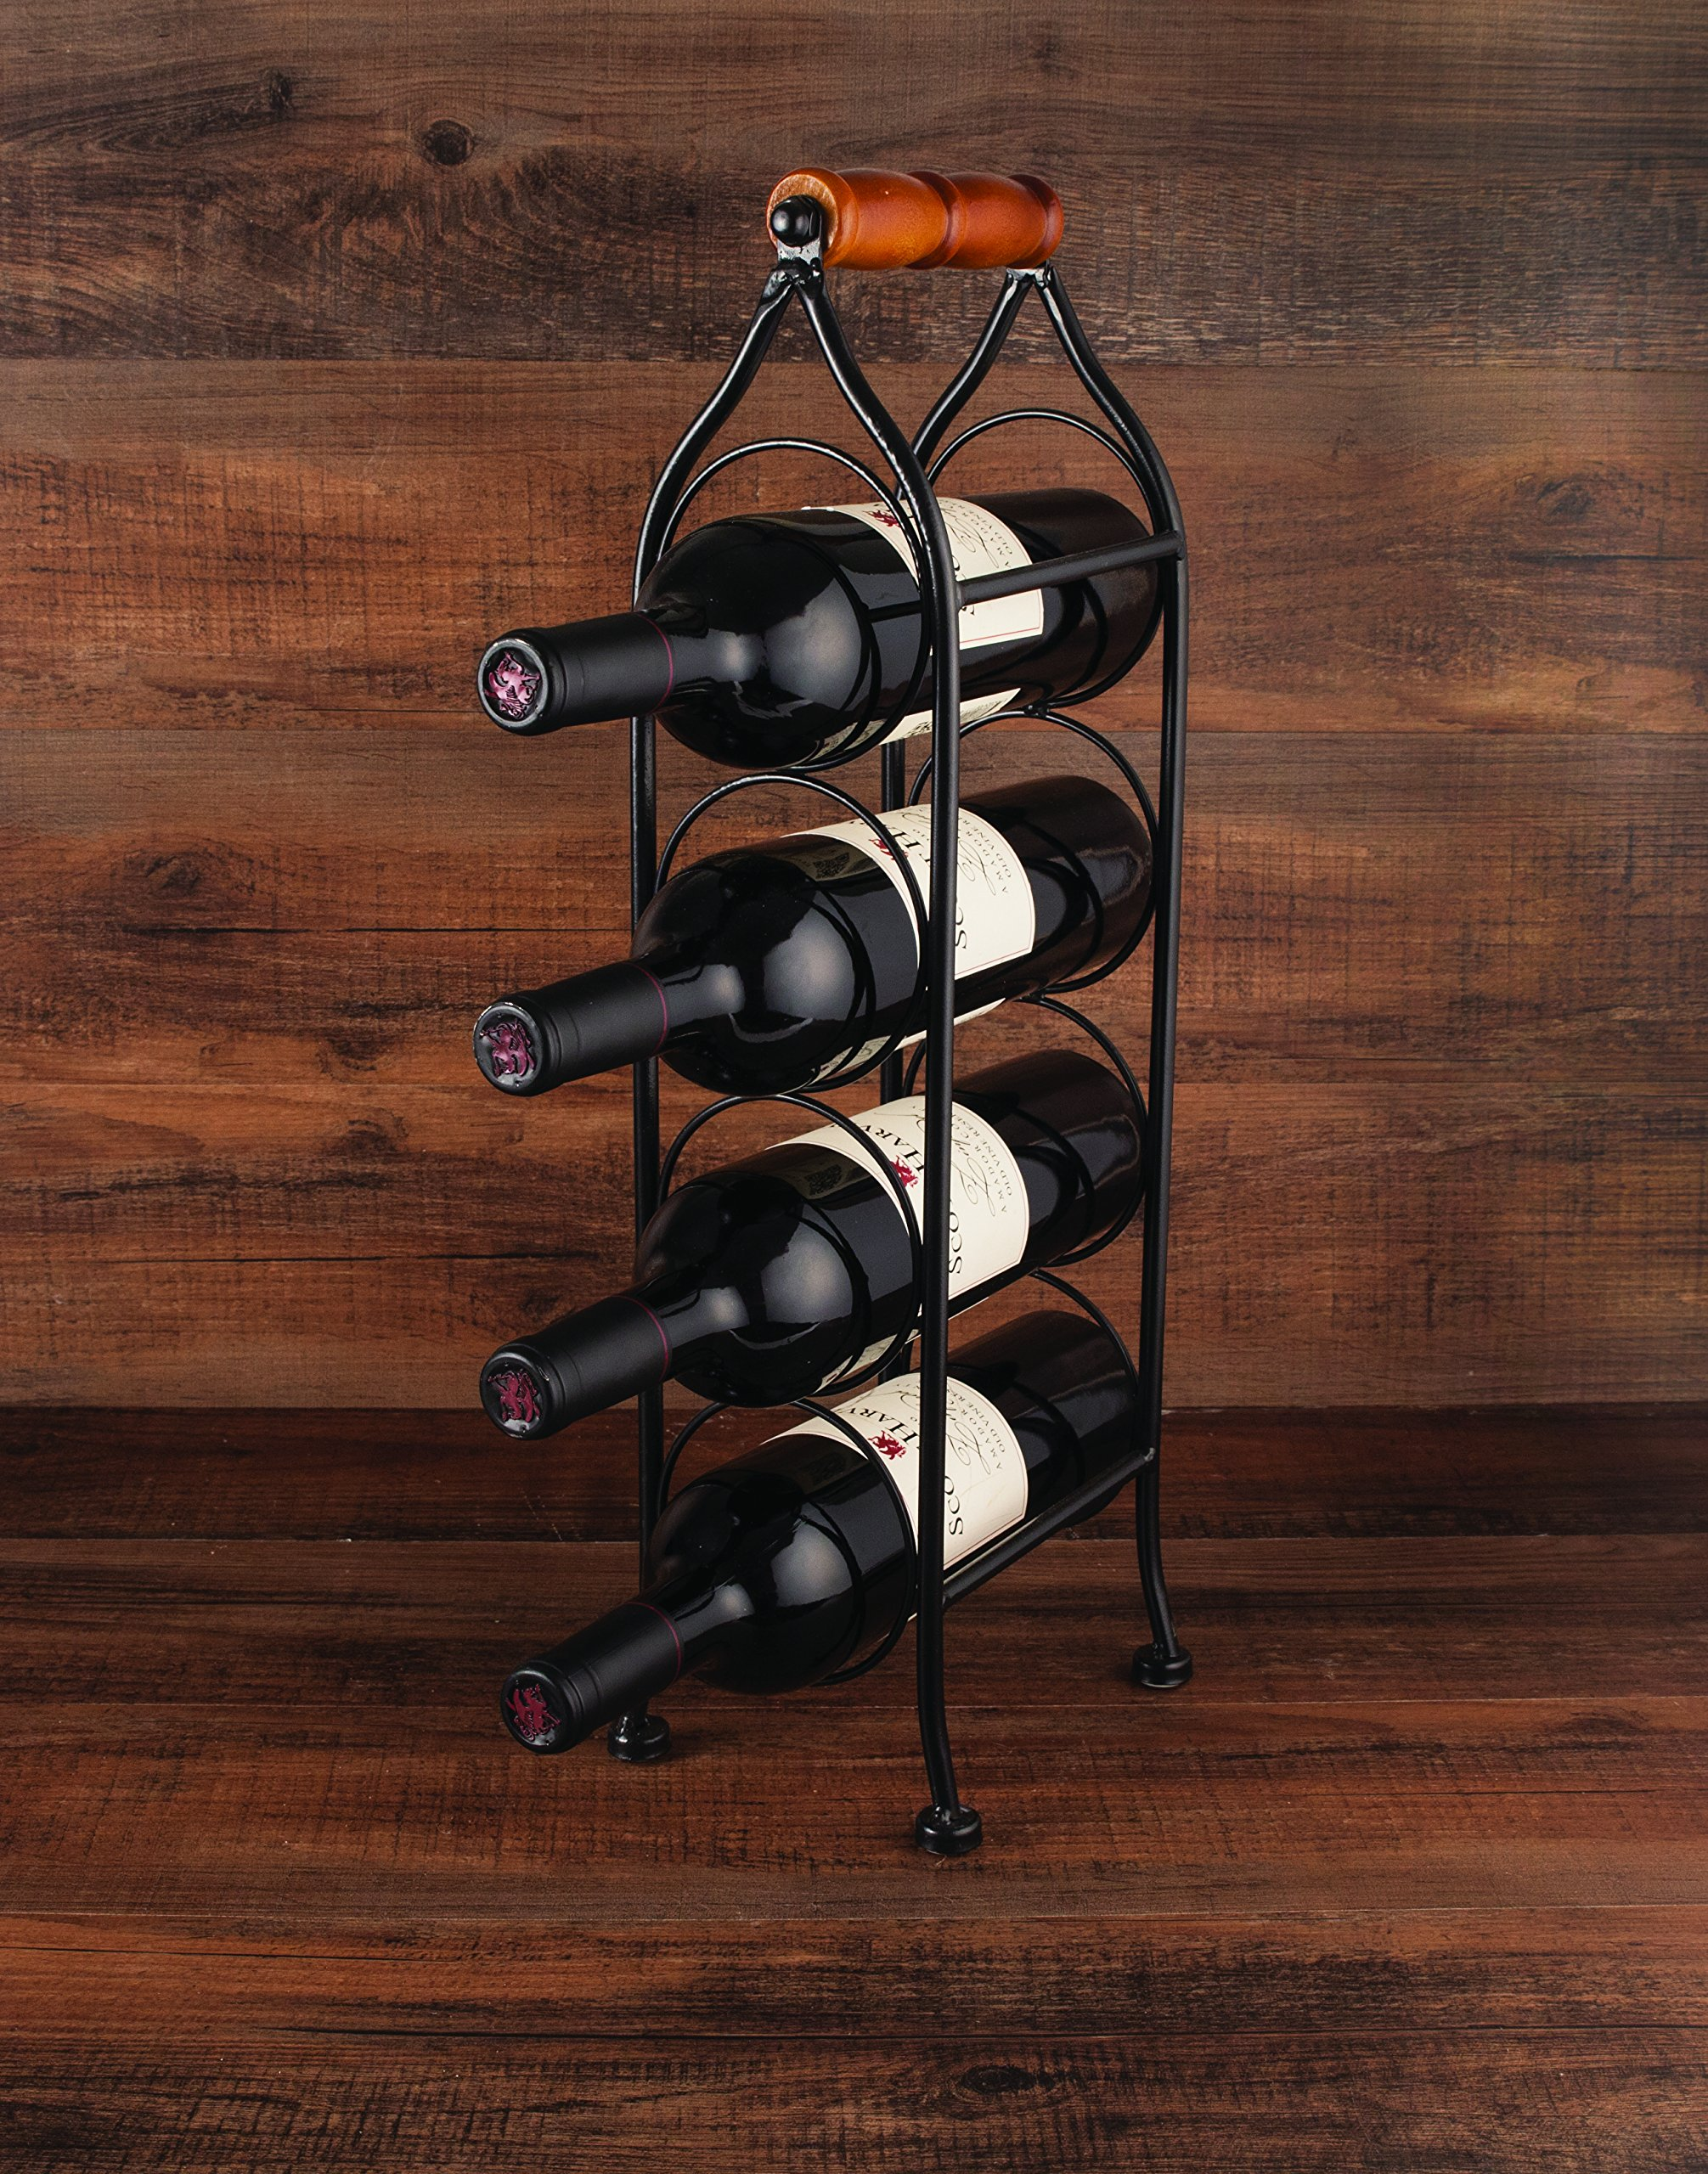 Twine Boulevard Climbing Tendril Bottle Holder by